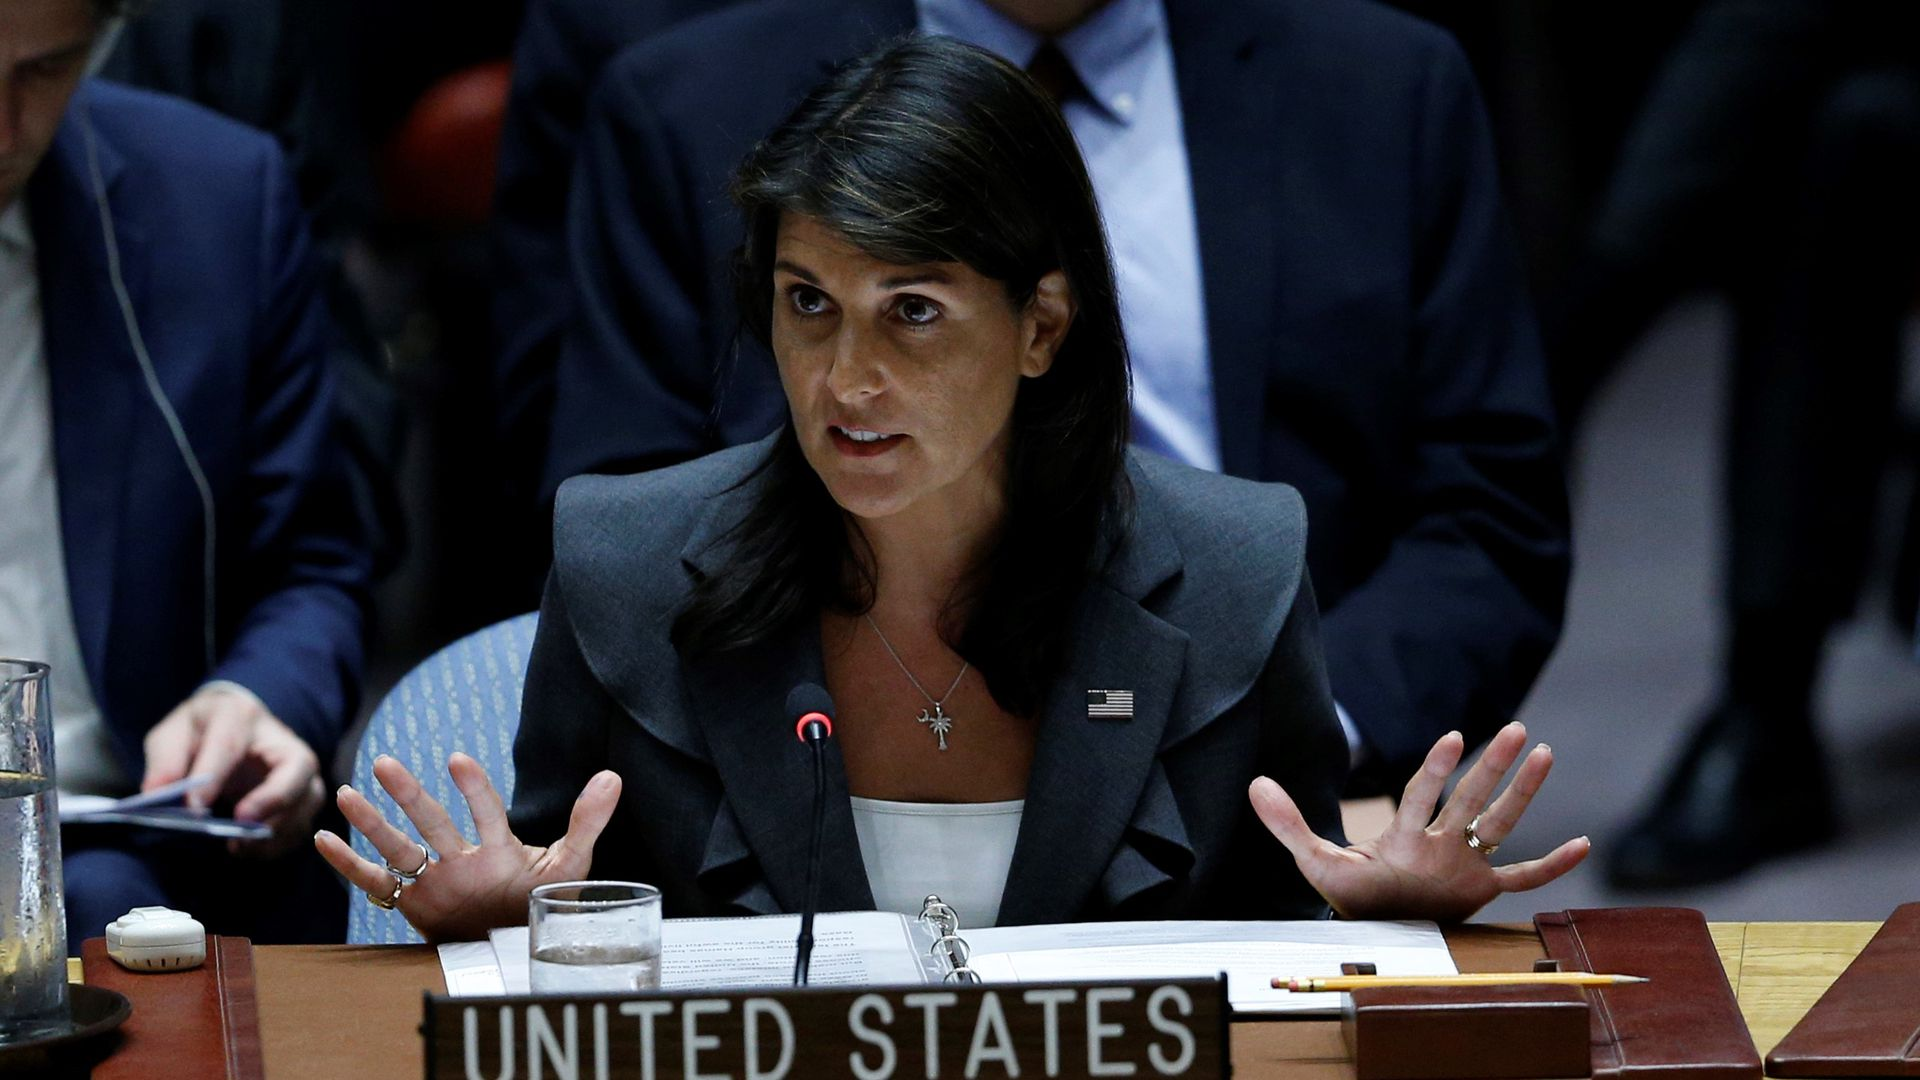 Nikki Haley puts her hands up while speaking behind the United States podium during a U.N. meeting